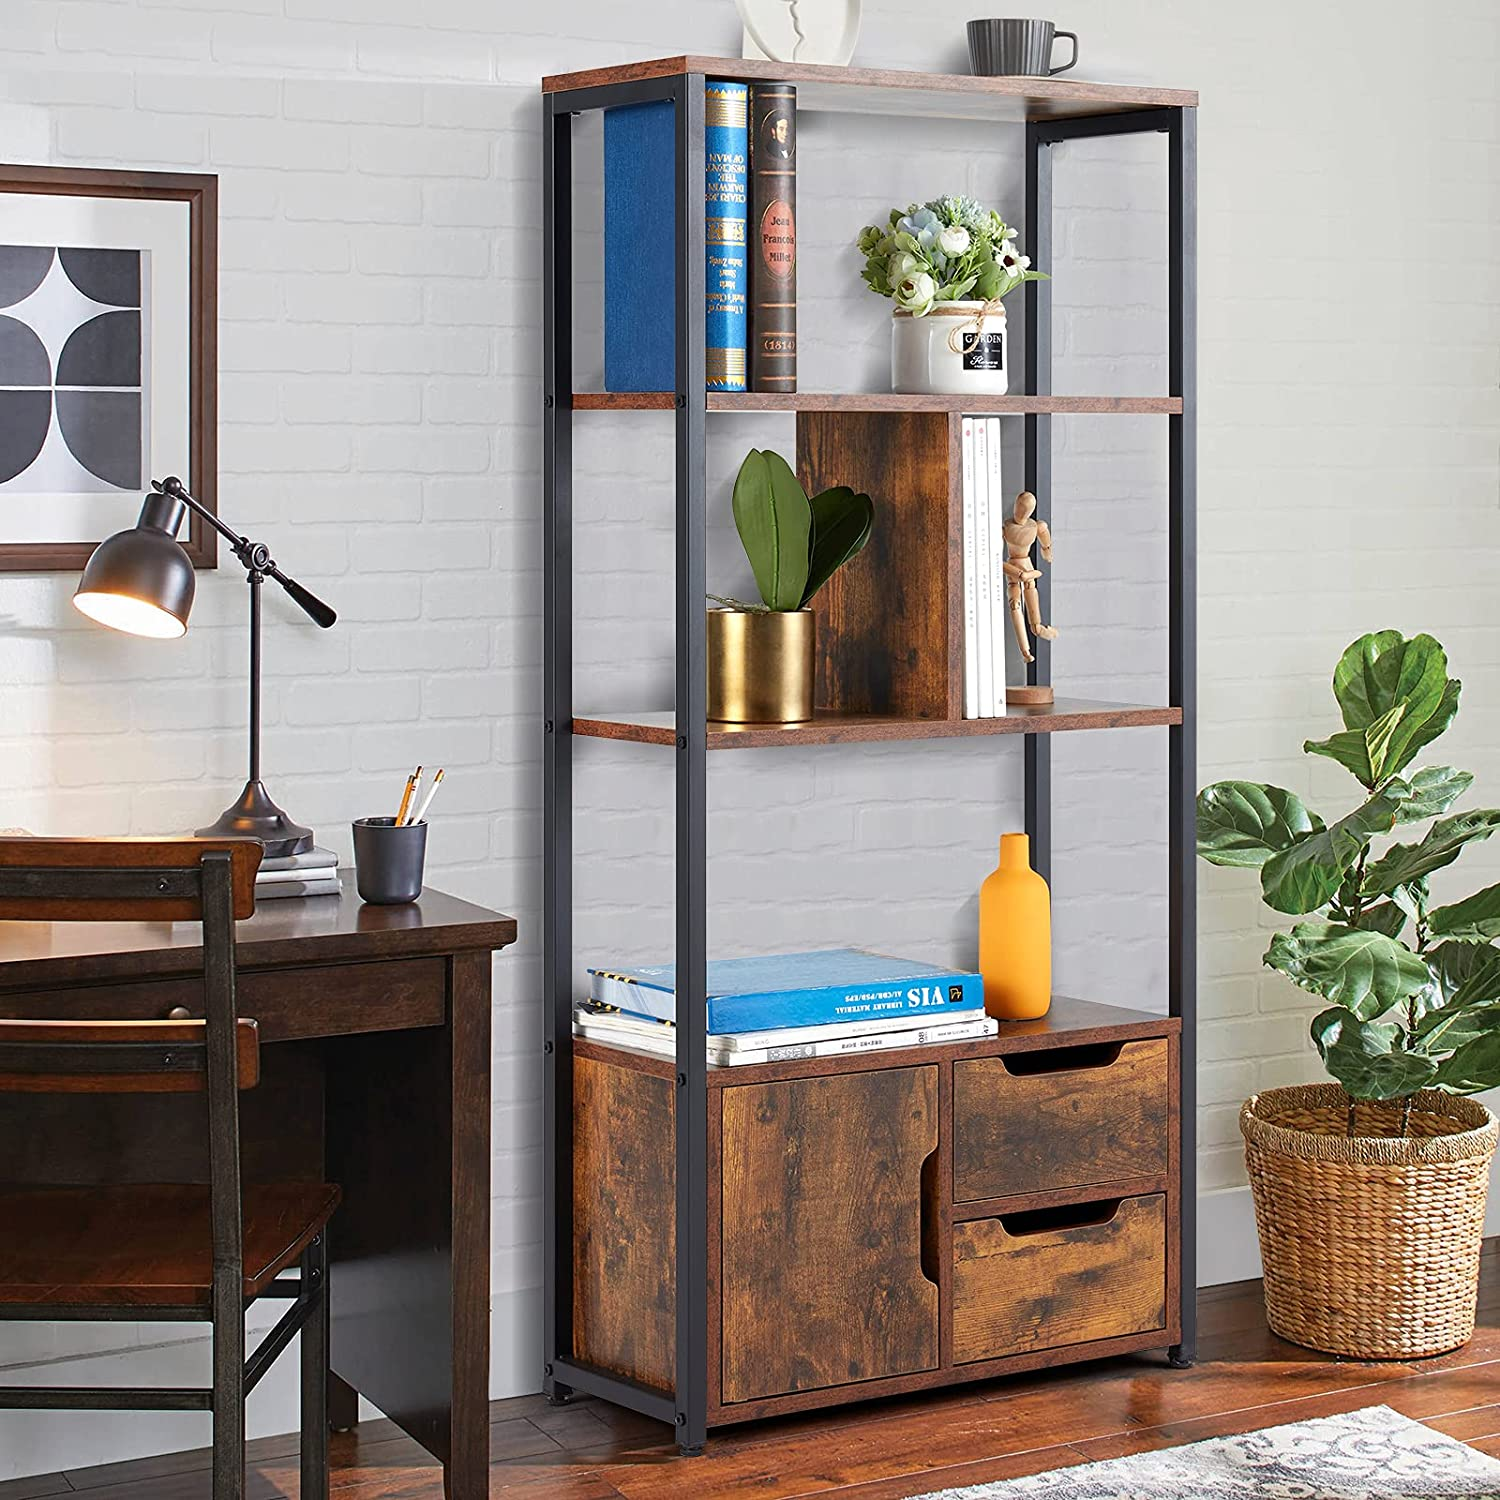 AVAWING Bookshelf with Cabinets, 3 Tier Industrial Book Shelves Vintage Wood Bookcase with Metal Frames, Multifunctional Furniture for Entryway Living Room Bedroom Home Office